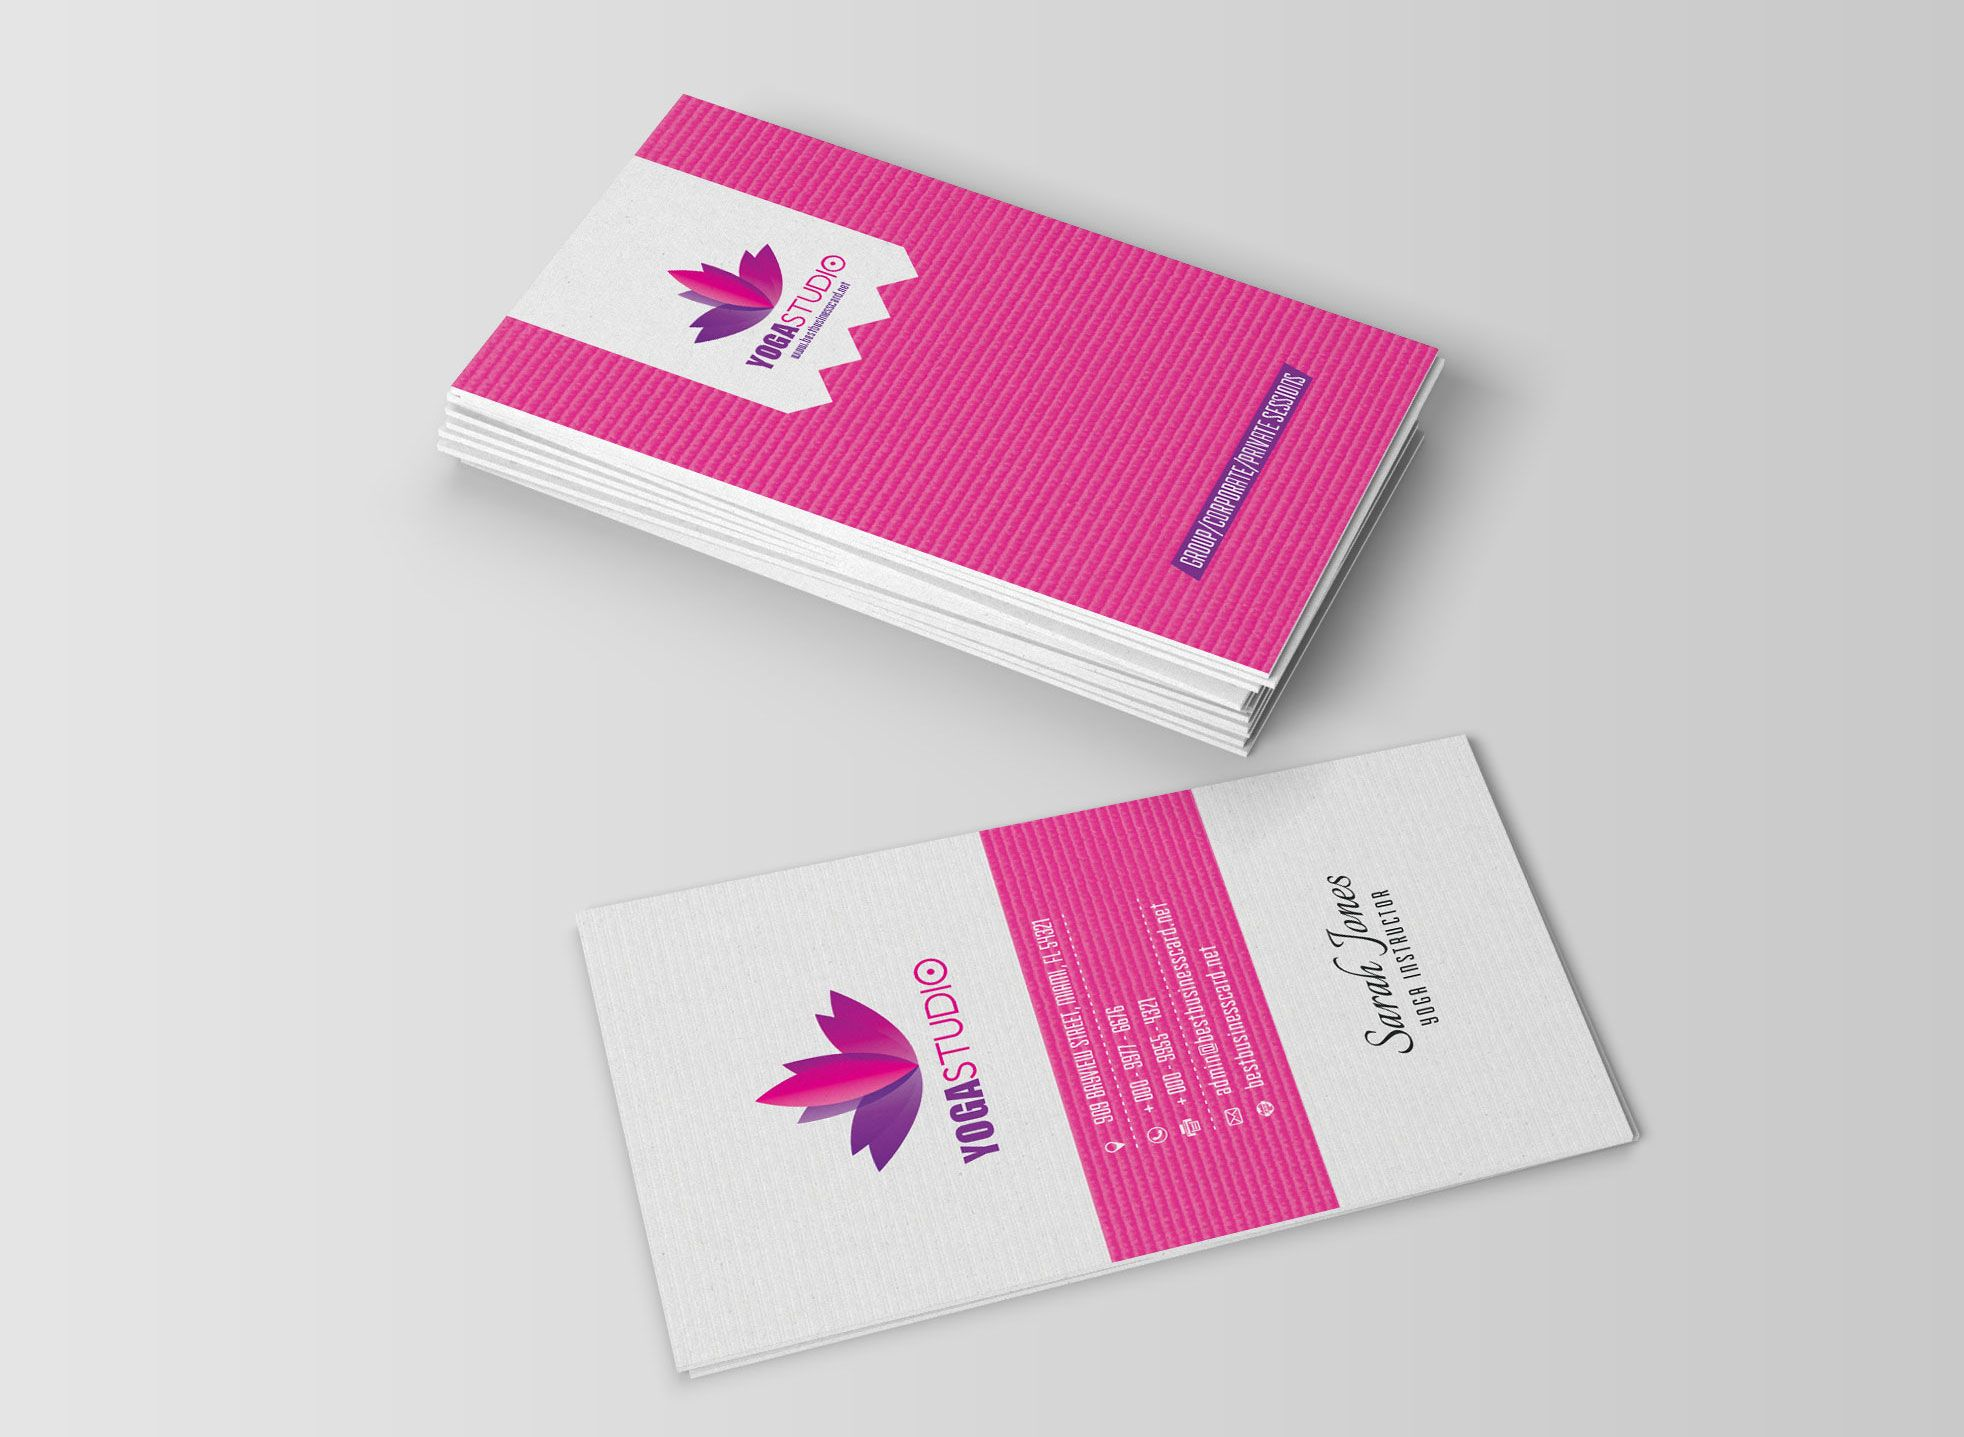 Yoga business cards free psd templates card pinterest psd yoga business cards free psd templates reheart Images